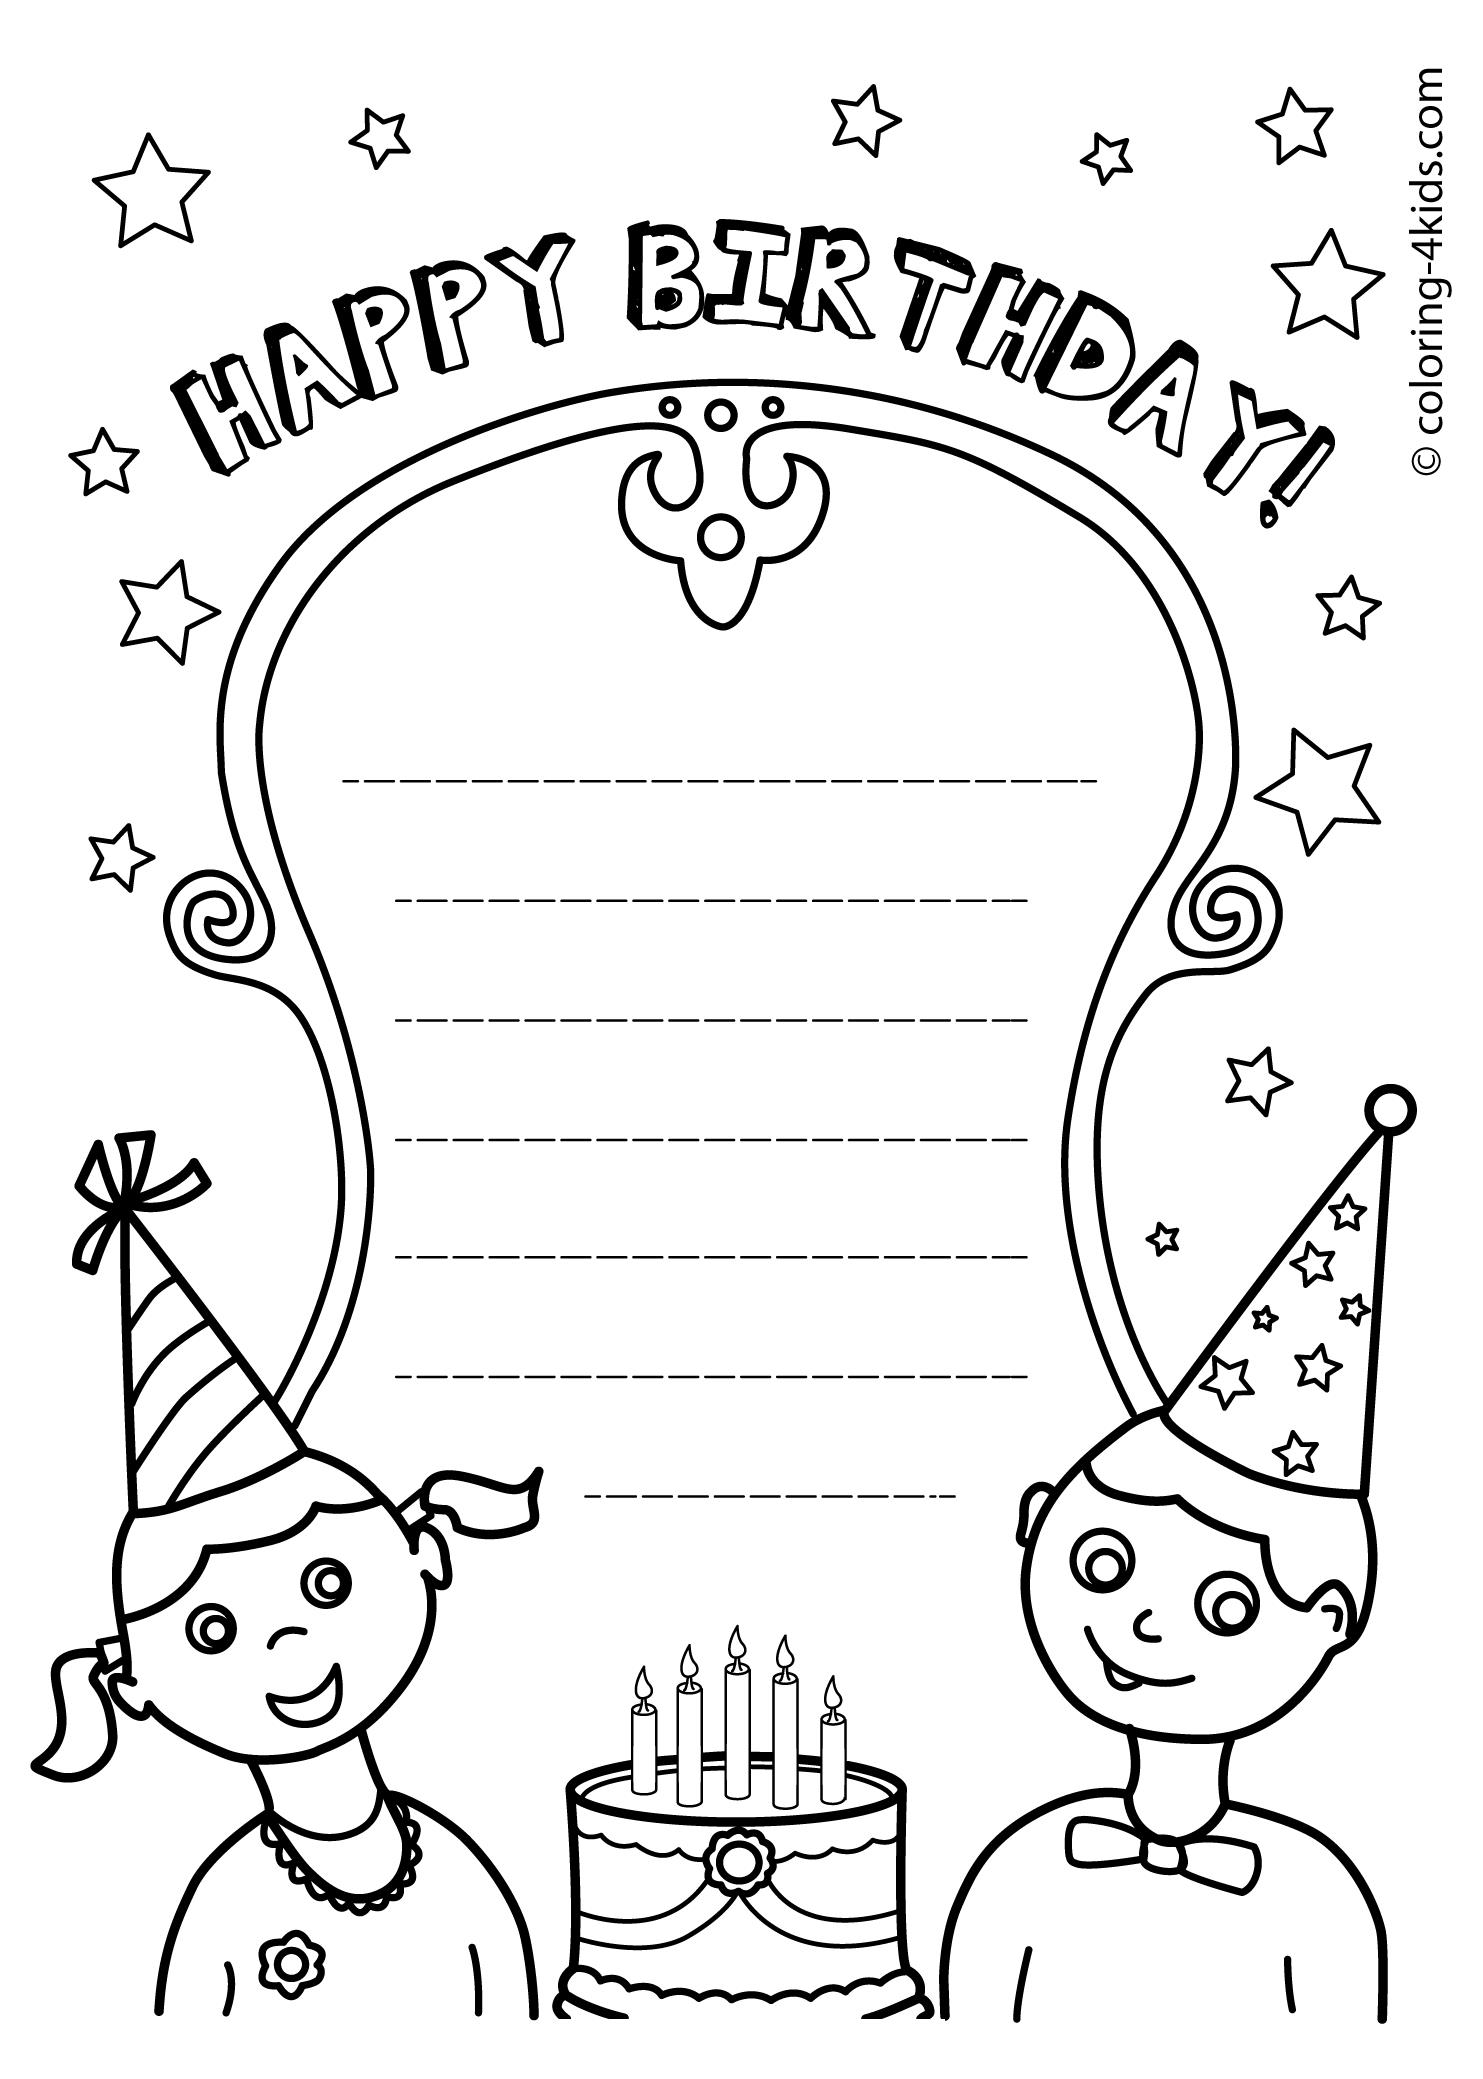 elmo birthday coloring pages to print ; elmo-birthday-coloring-pages-free-printable-adult-kid-pagesbirthday-cake-for-adults